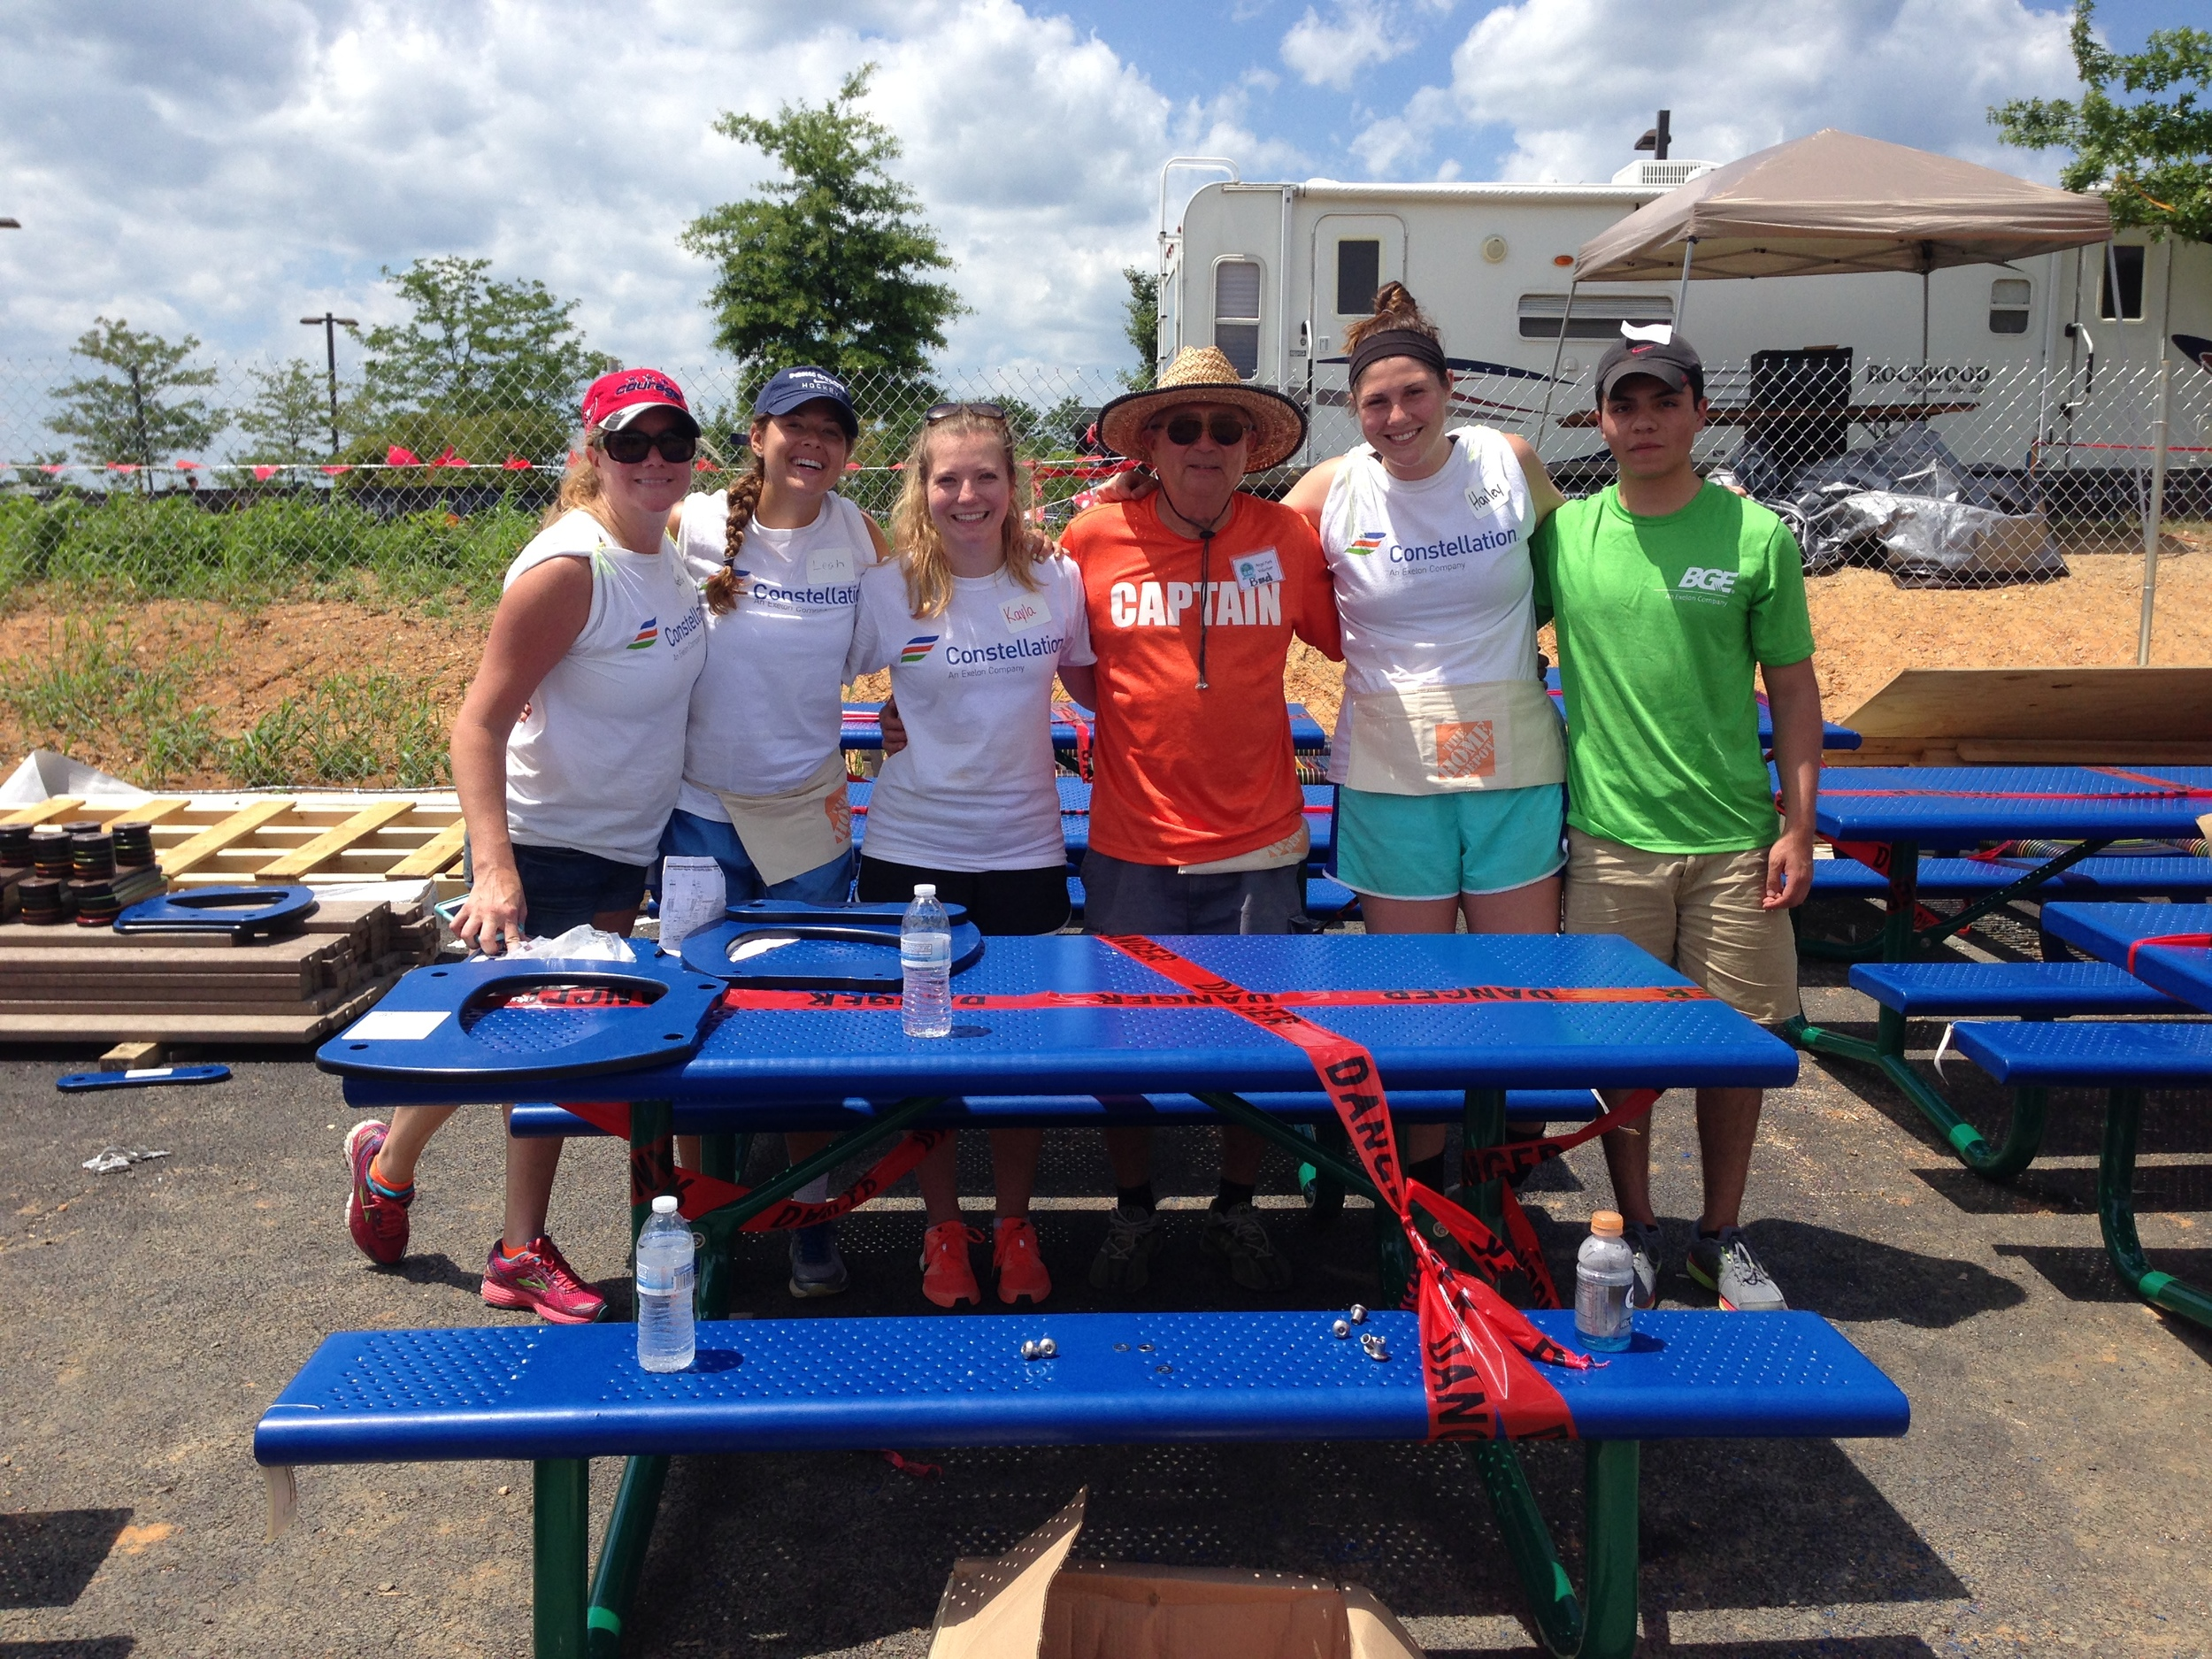 Bud Szczybor, in orange, with Angel Park volunteers during one of the community build days.